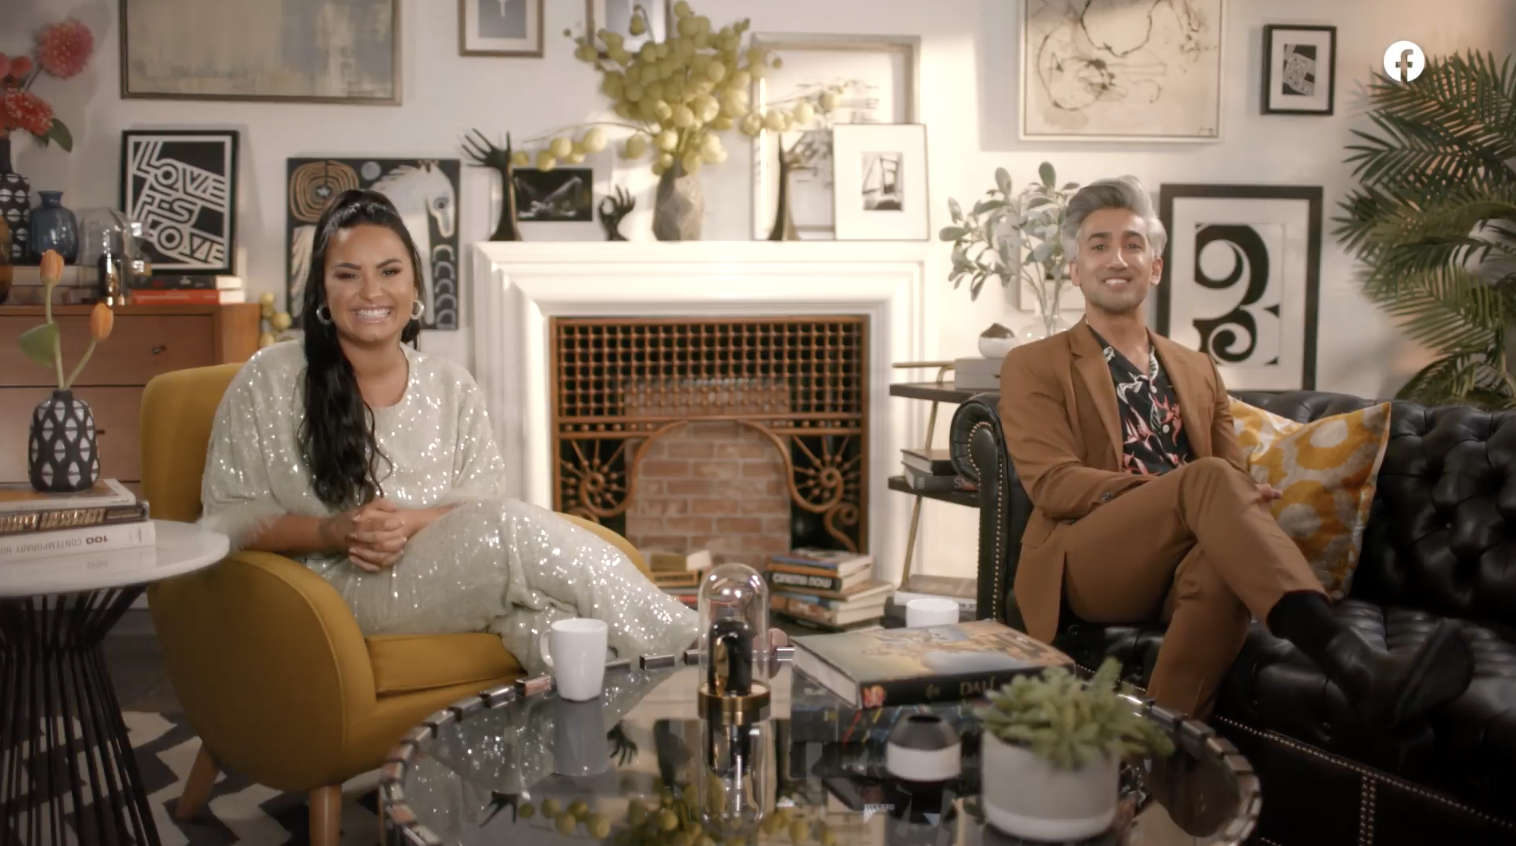 Demi and Tan smiling on couches